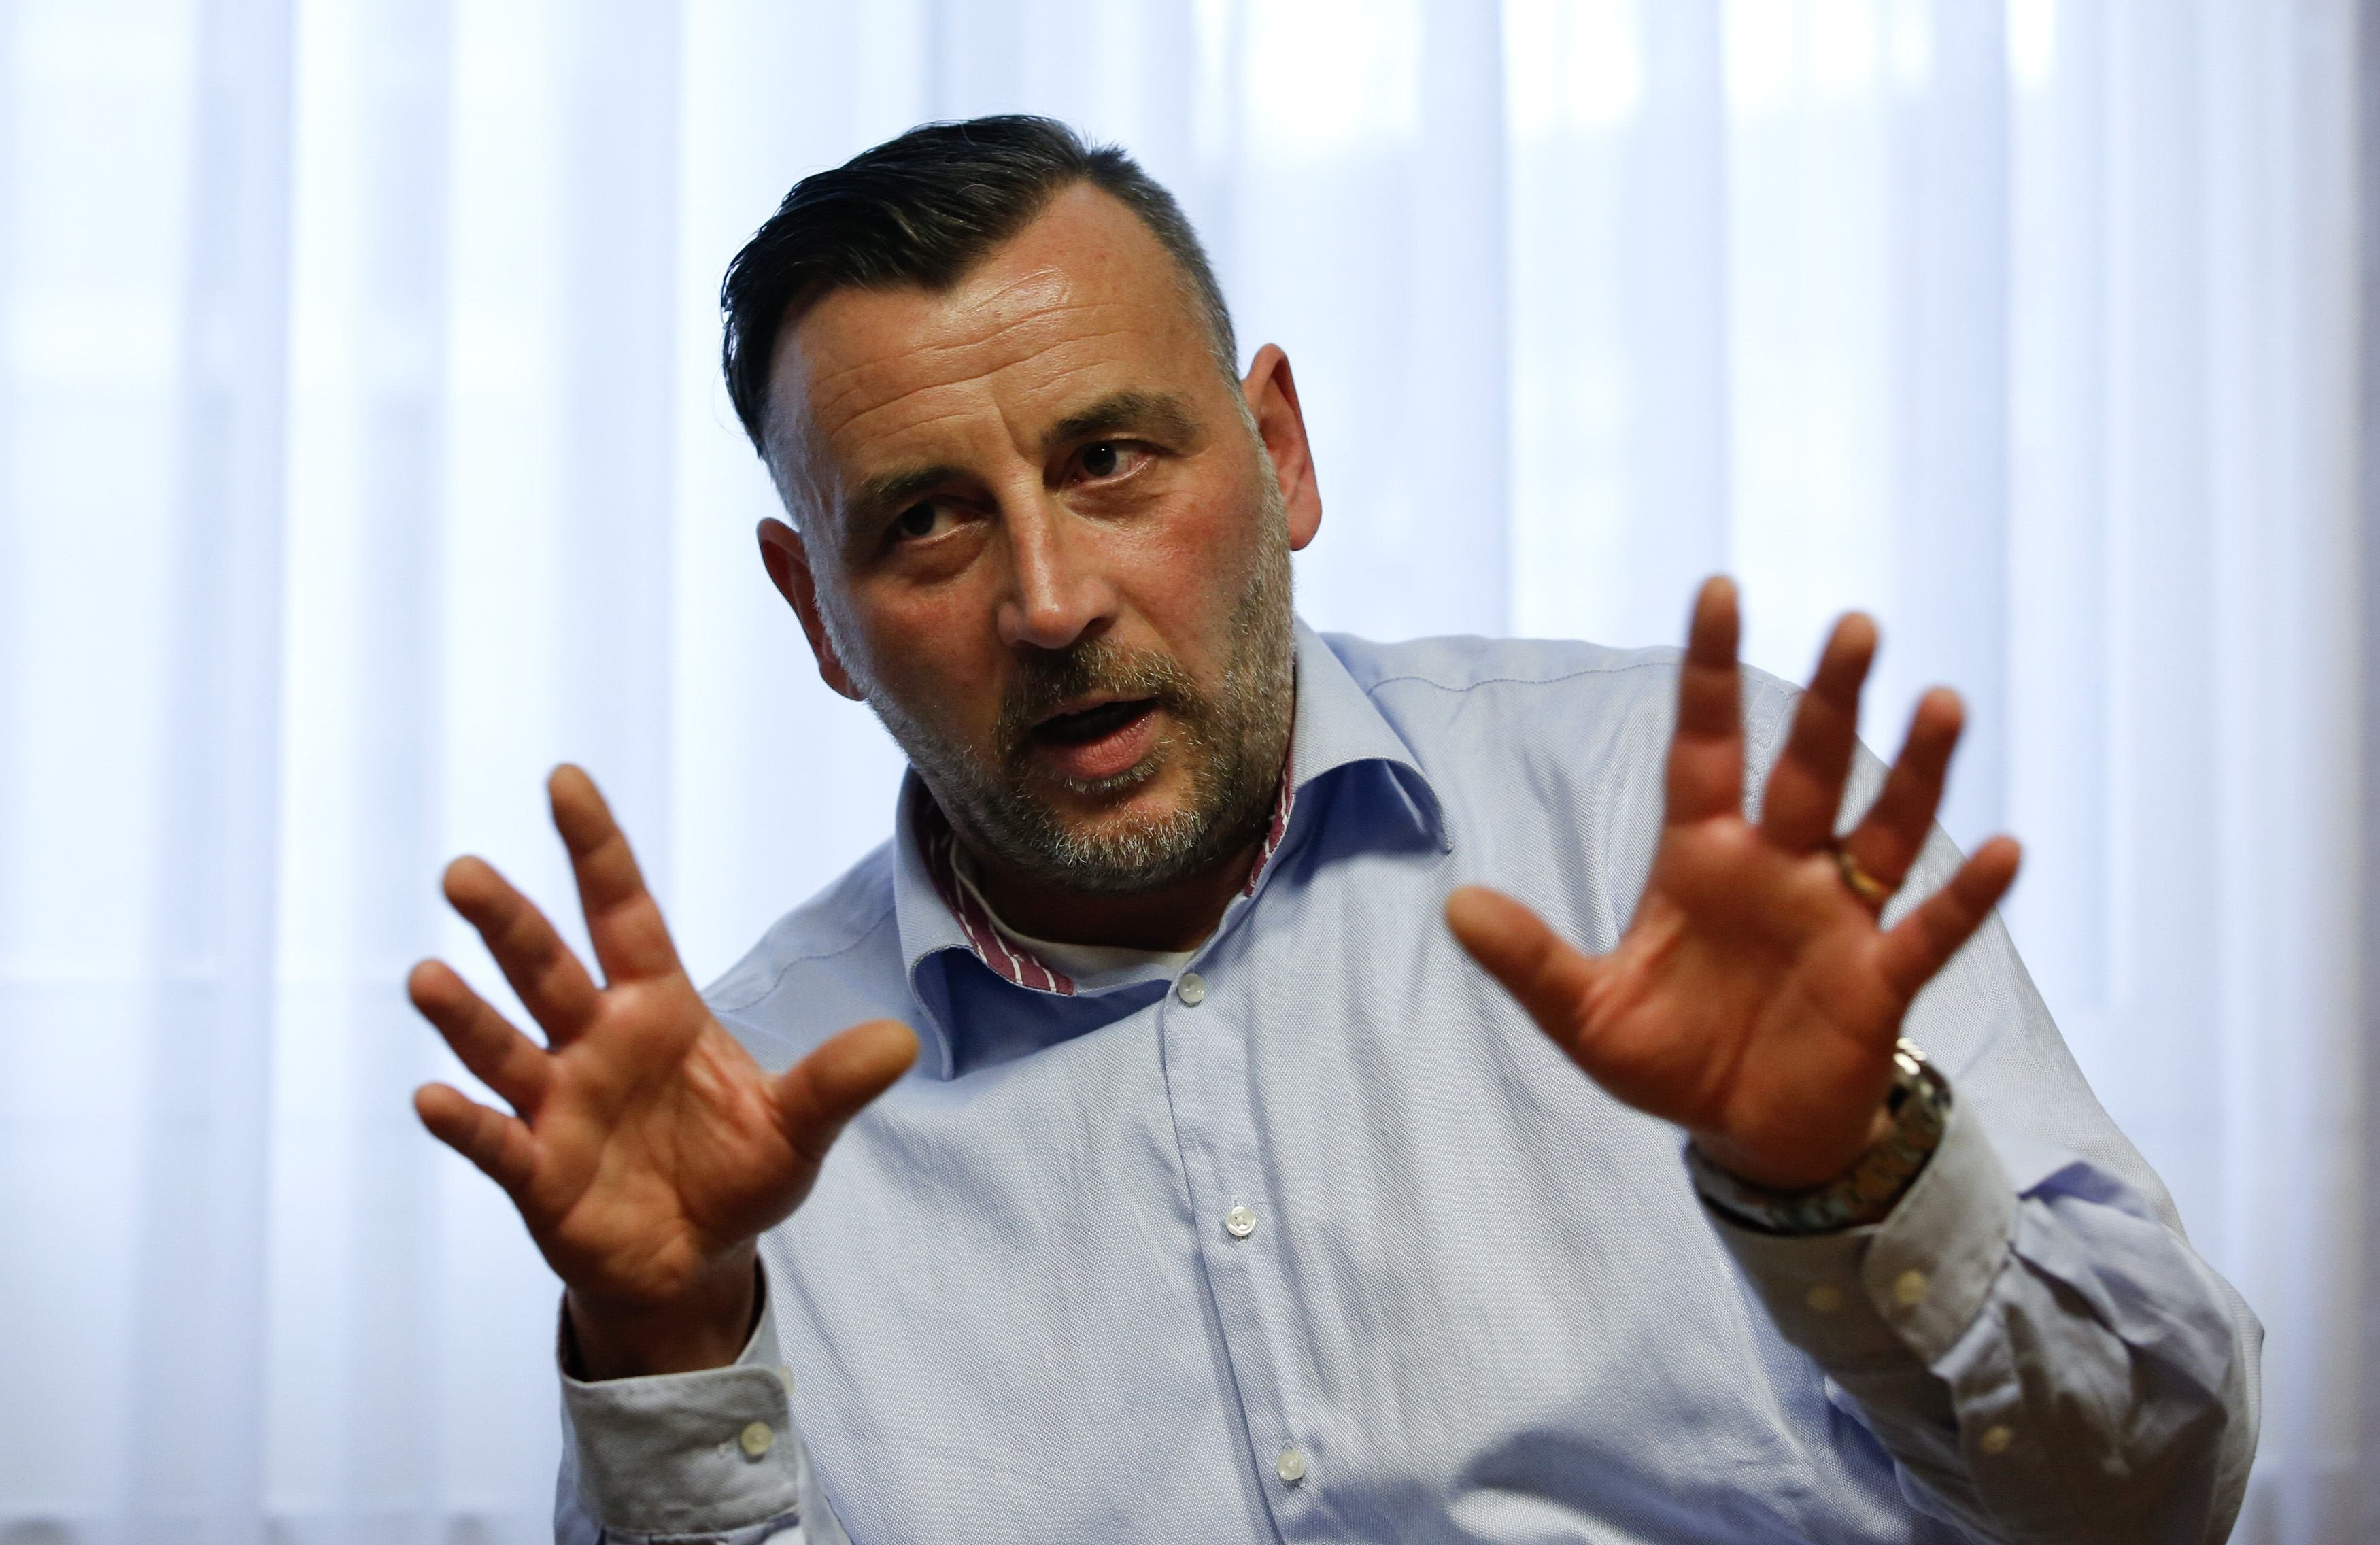 Lutz Bachmann, co-leader of anti-immigration group PEGIDA, a German abbreviation for  Patriotic Europeans against the Islamization of the West  during a Reuters interview in Dresden on Jan. 12, 2015.